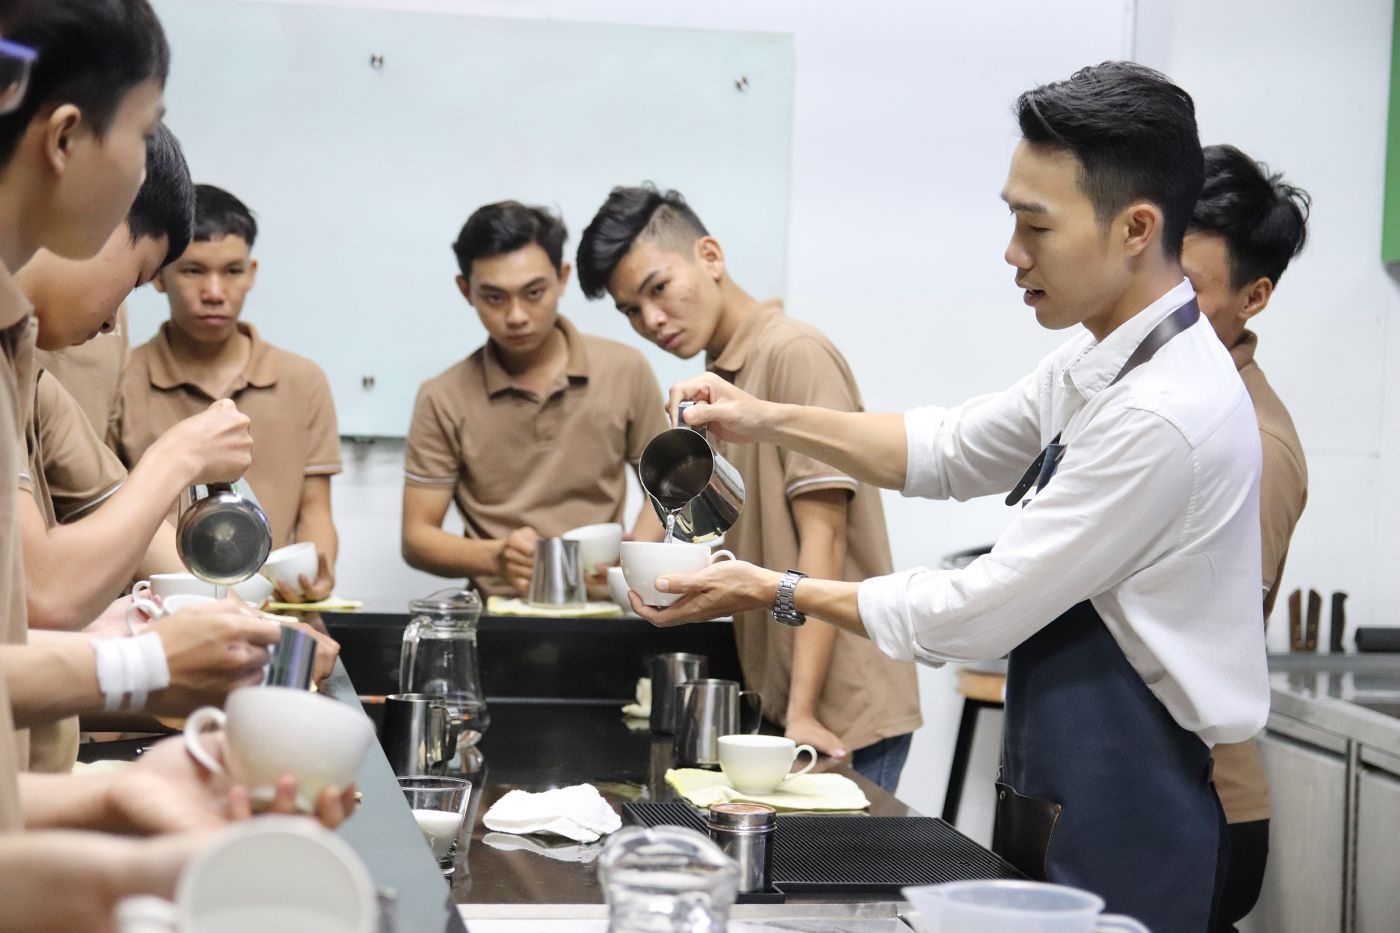 Youth training programme for employment in hospitality food and beverage F&B